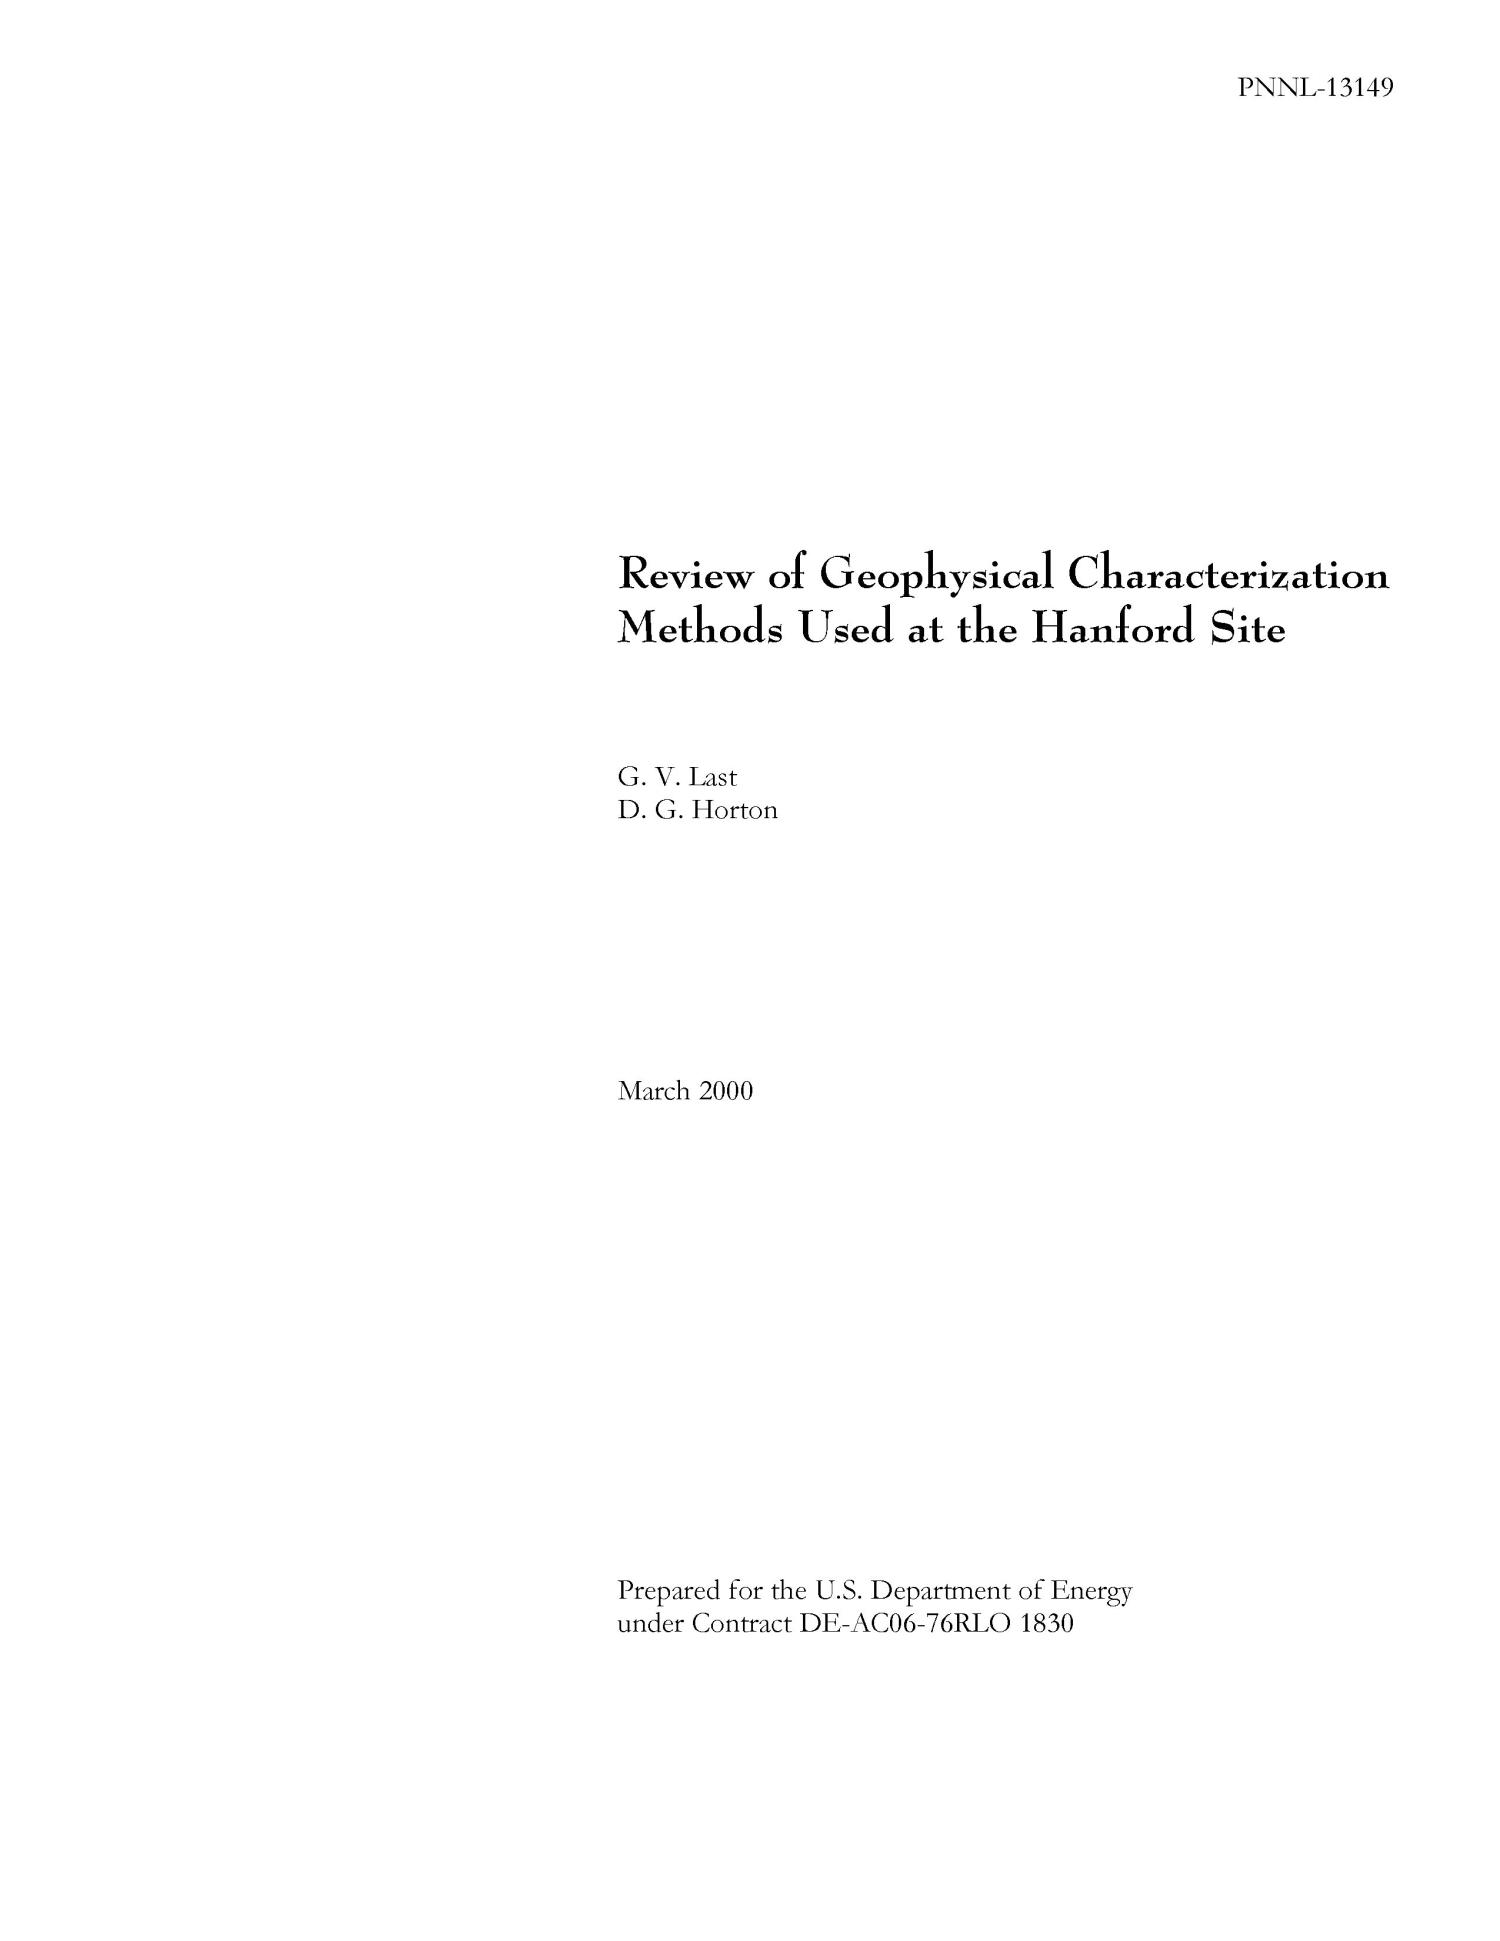 Review of Geophysical Characterization Methods Used at the Hanford Site                                                                                                      [Sequence #]: 1 of 113